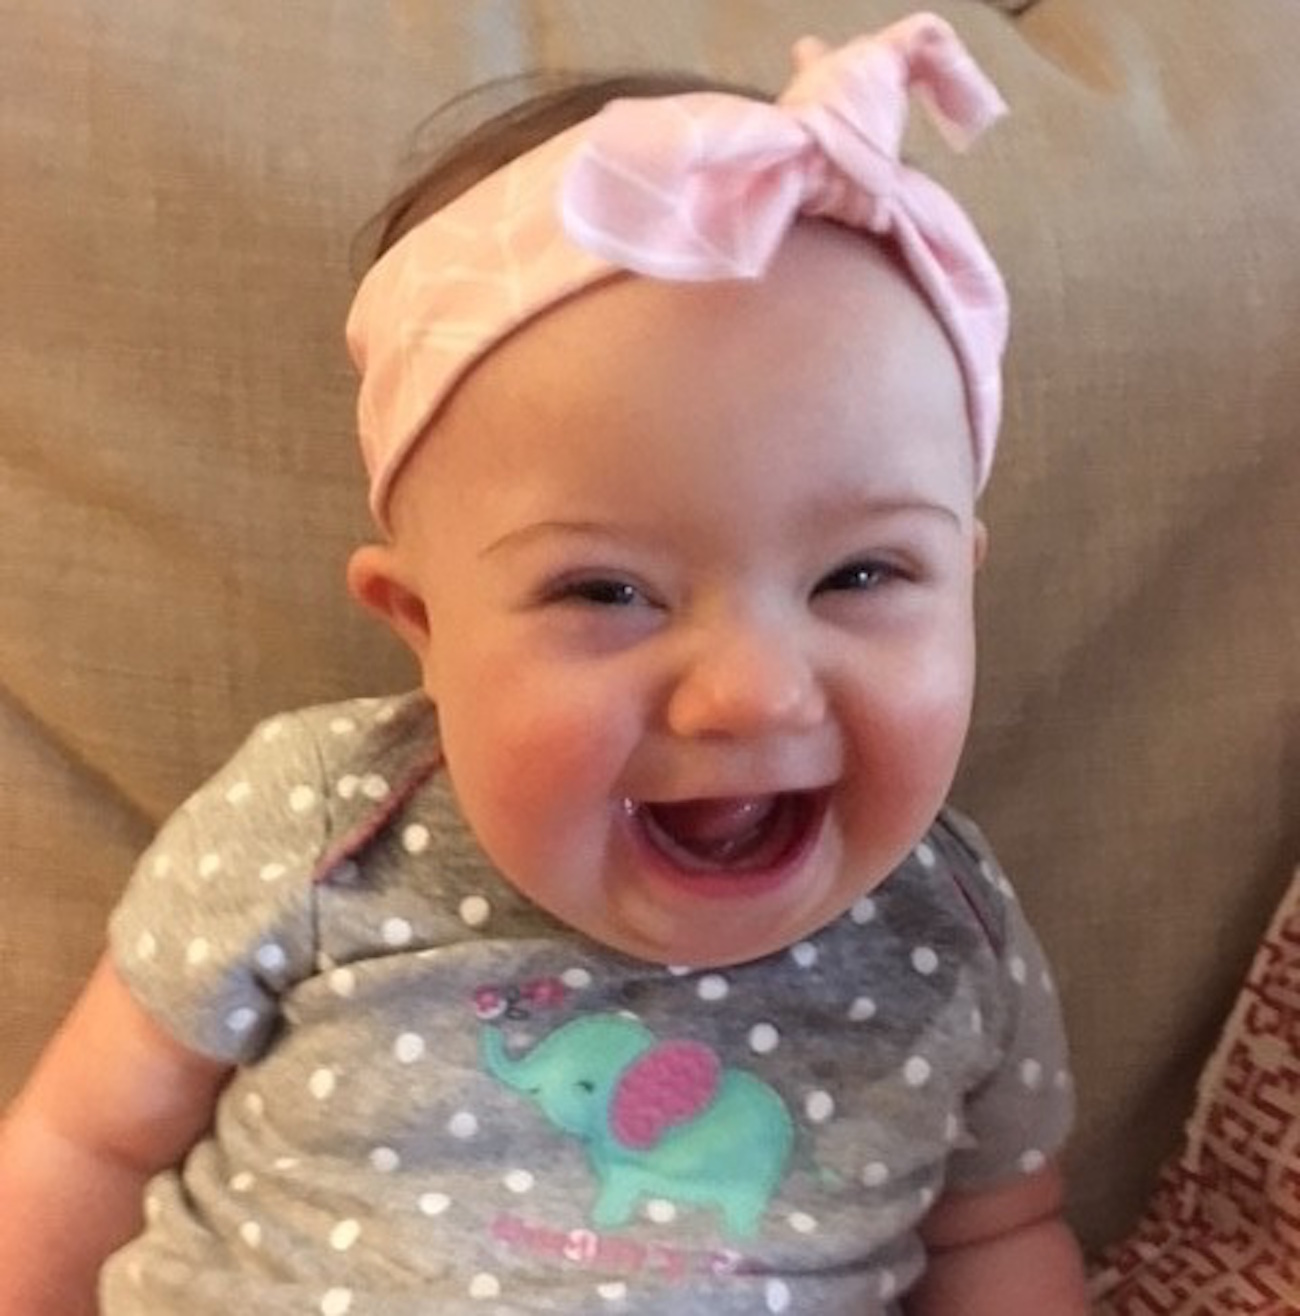 The author's daughter, smiling, wearing a headband